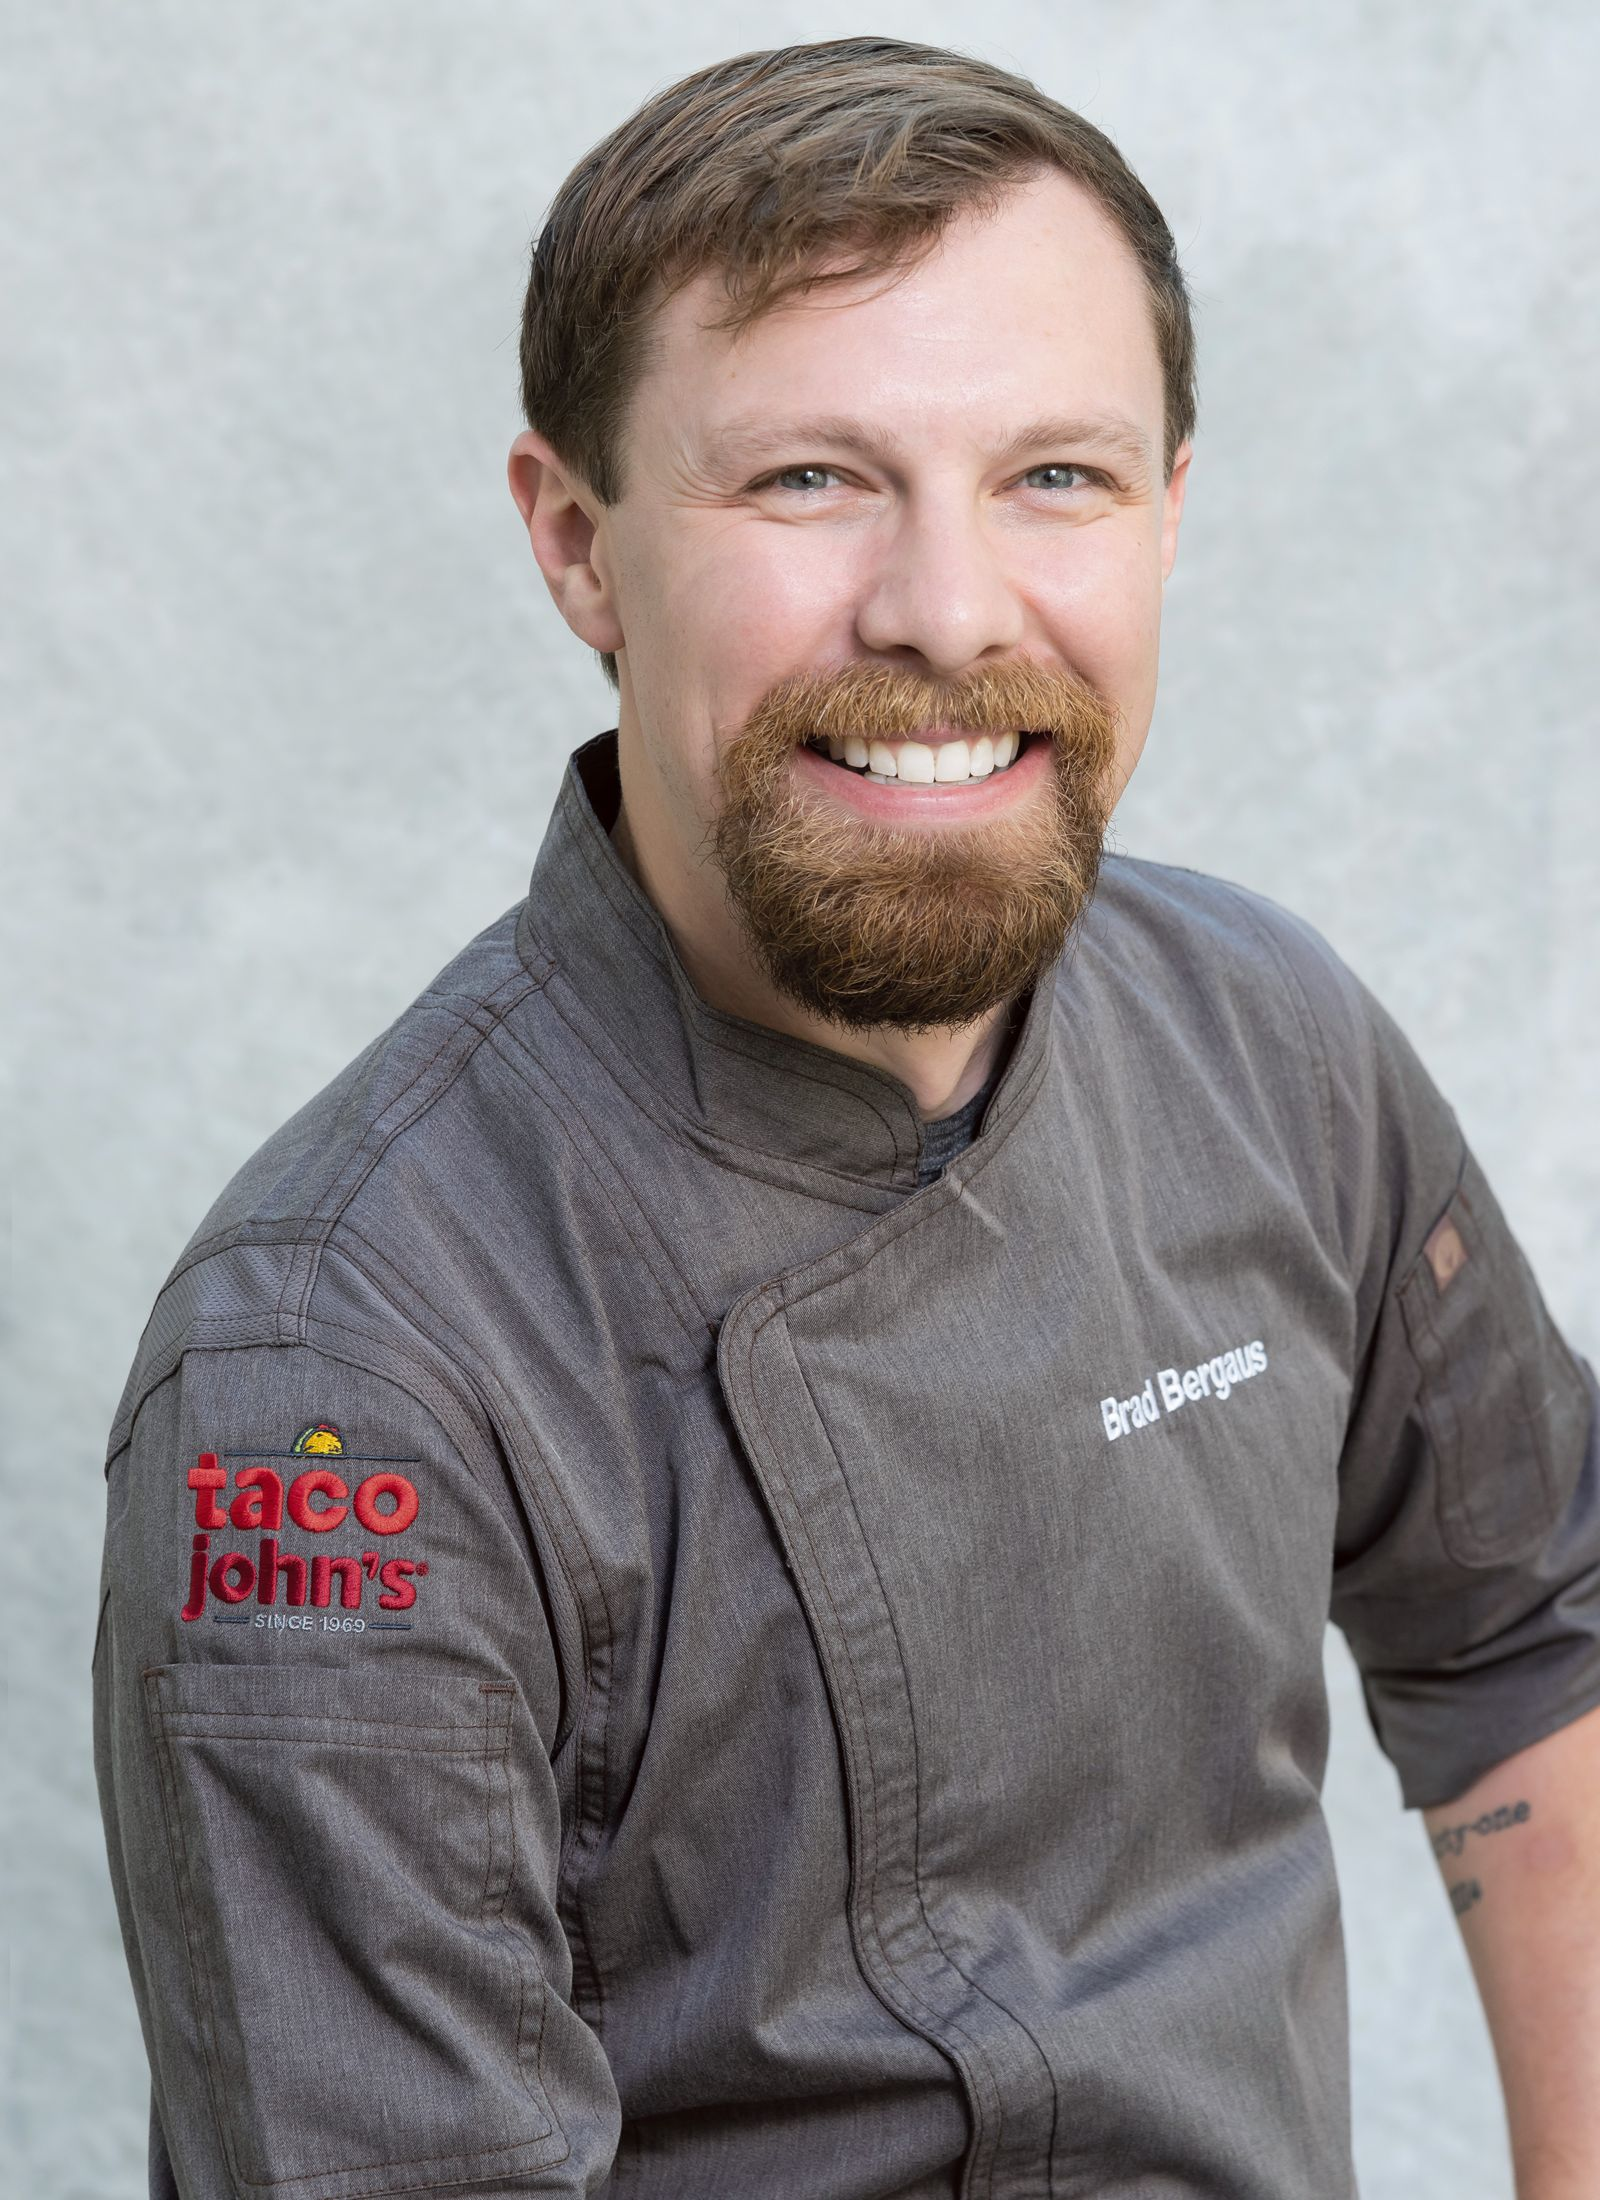 Taco John's Welcomes Brad Bergaus as New Corporate Chef